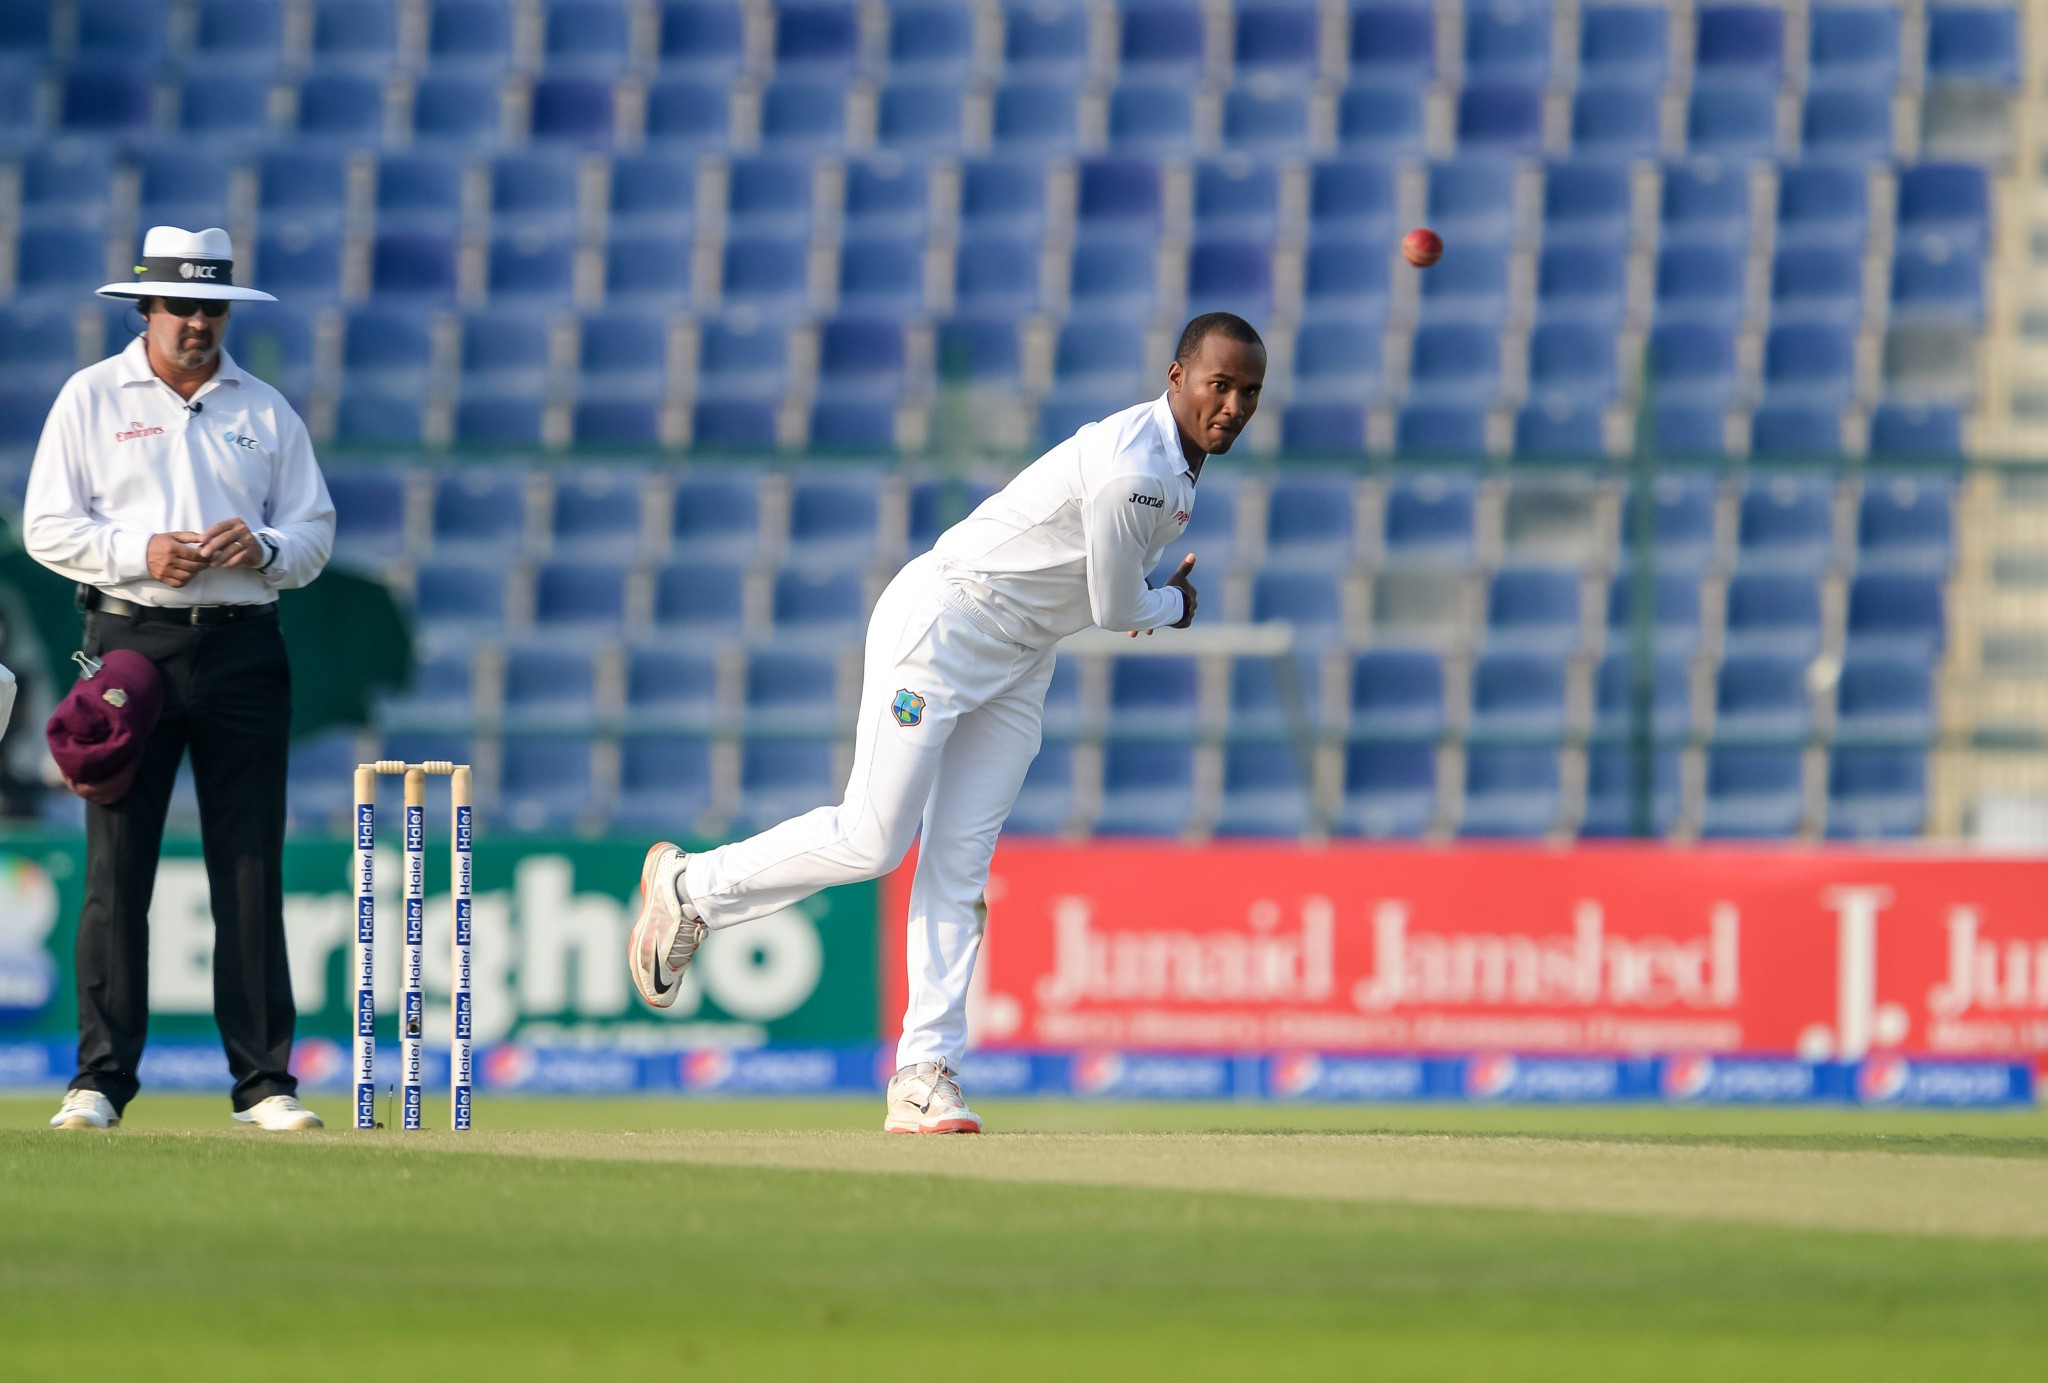 Bowling action of Brathwaite reported by cricket officials